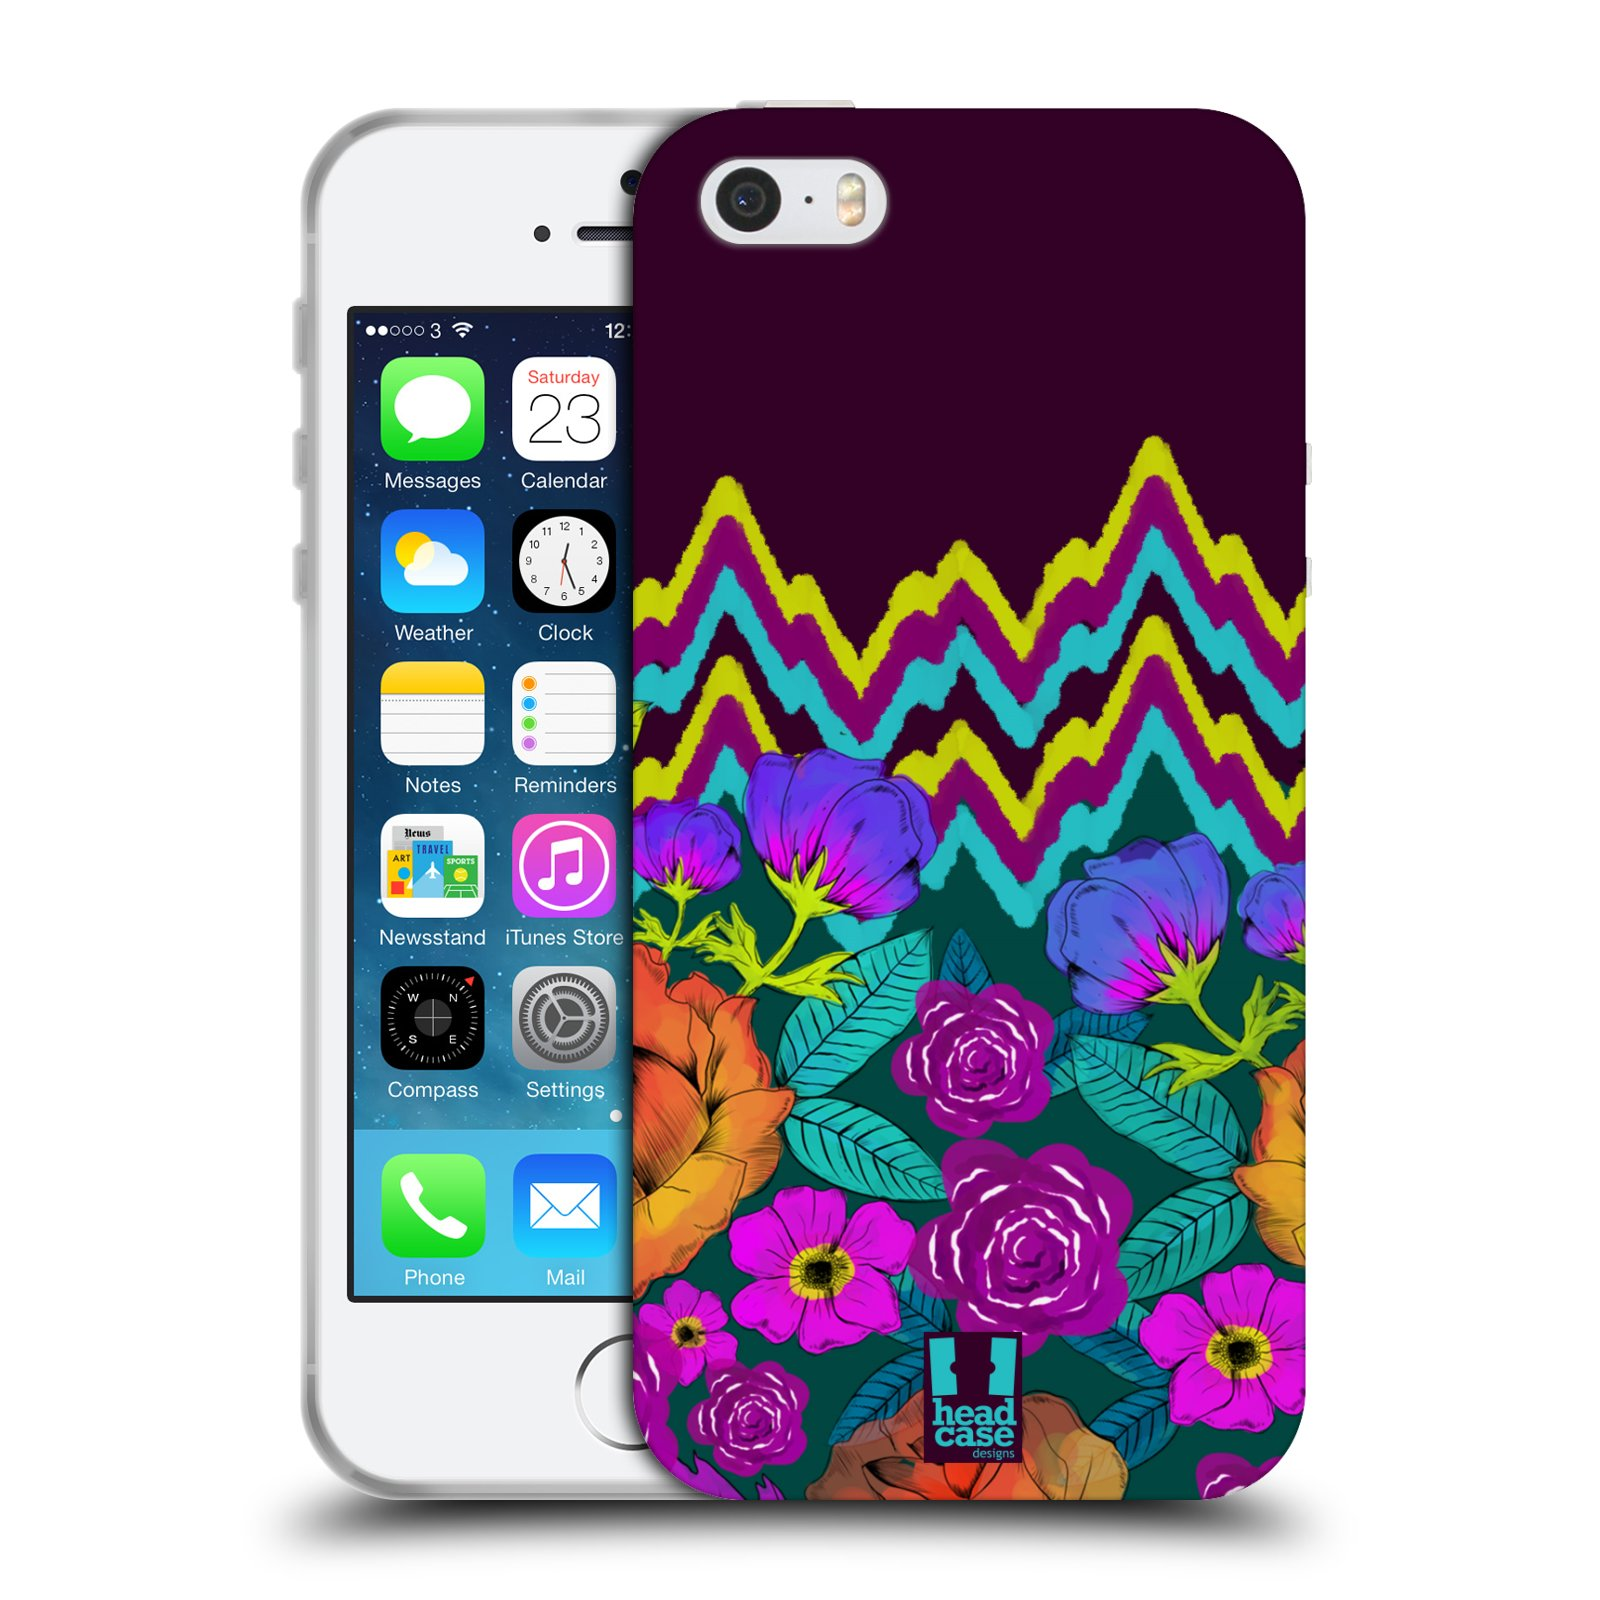 HEAD CASE PATTERN MIX TPU GEL BACK CASE COVER FOR APPLE iPHONE 5S